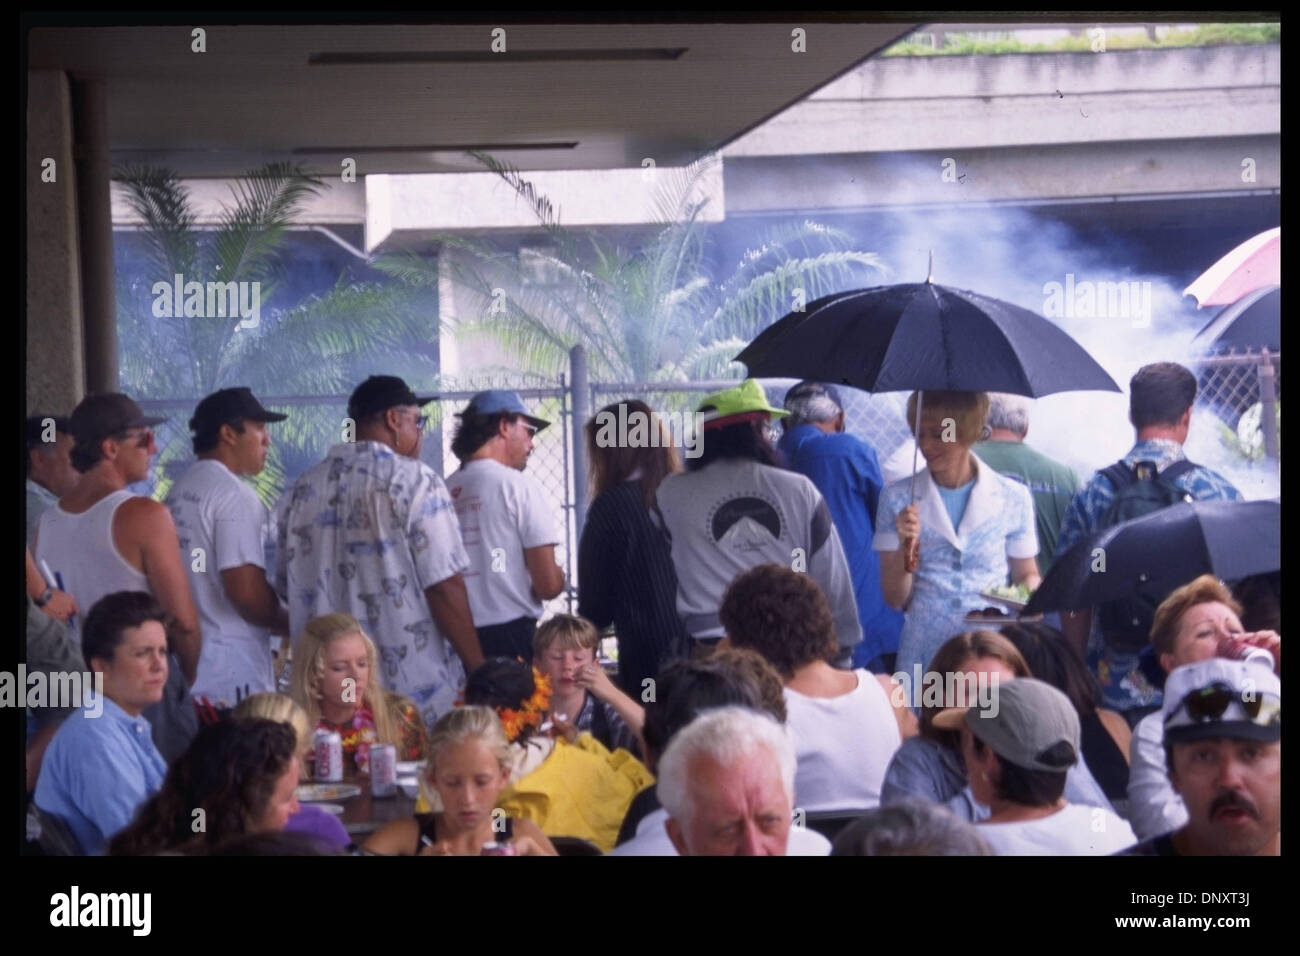 Hollywood, CA, USA; The cast of ' A VERY BRADY SEQUEL. ' are rained out from the film. Mandatory Credit: Kathy Hutchins/ZUMA Press. (©) Kathy Hutchins - Stock Image